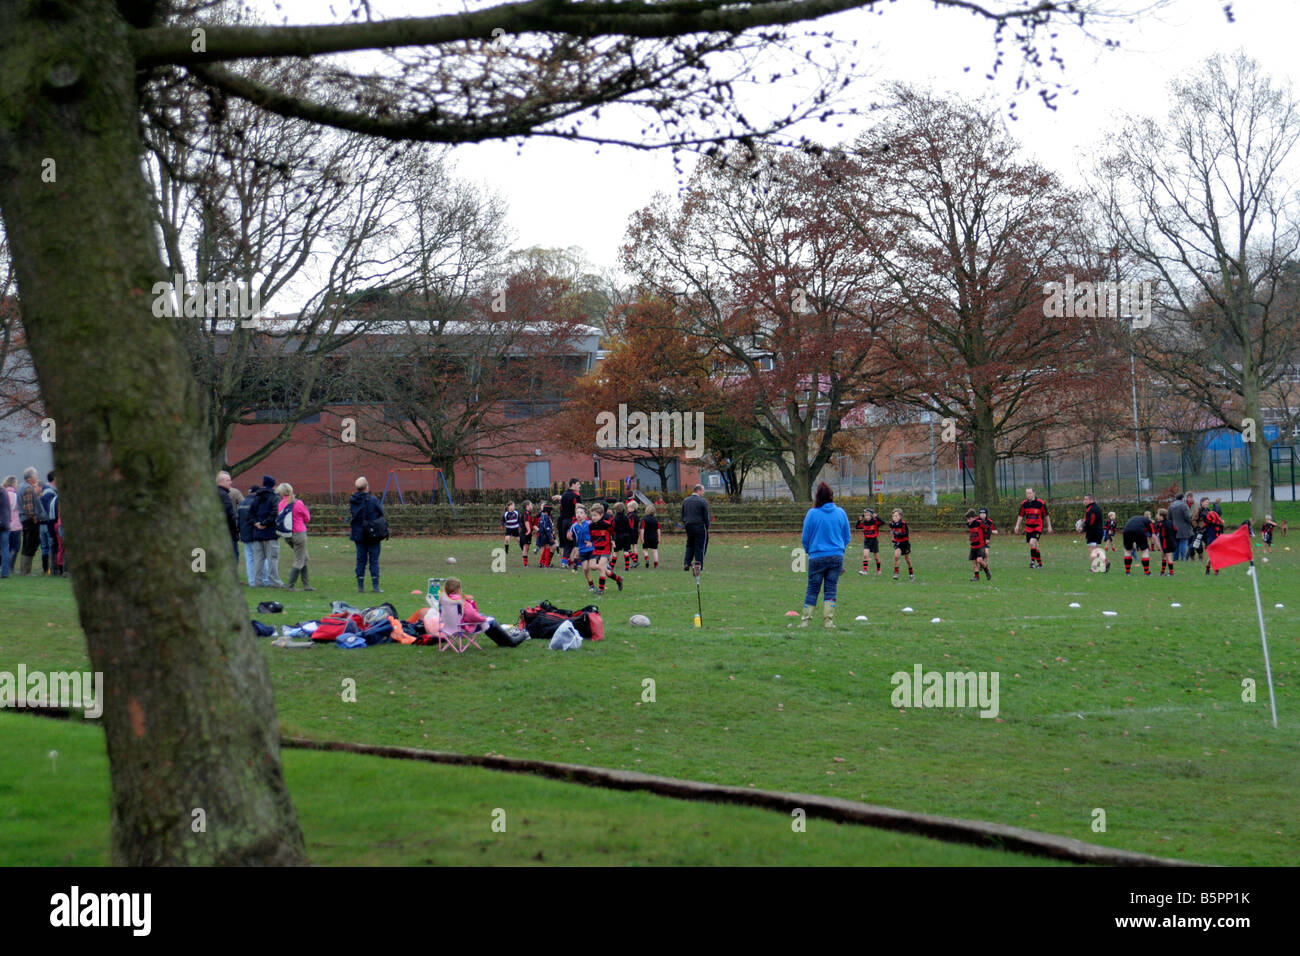 AMENITY SPORT GROUNDS FOR PUBLIC USE WELLINGTON SOMERSET - Stock Image